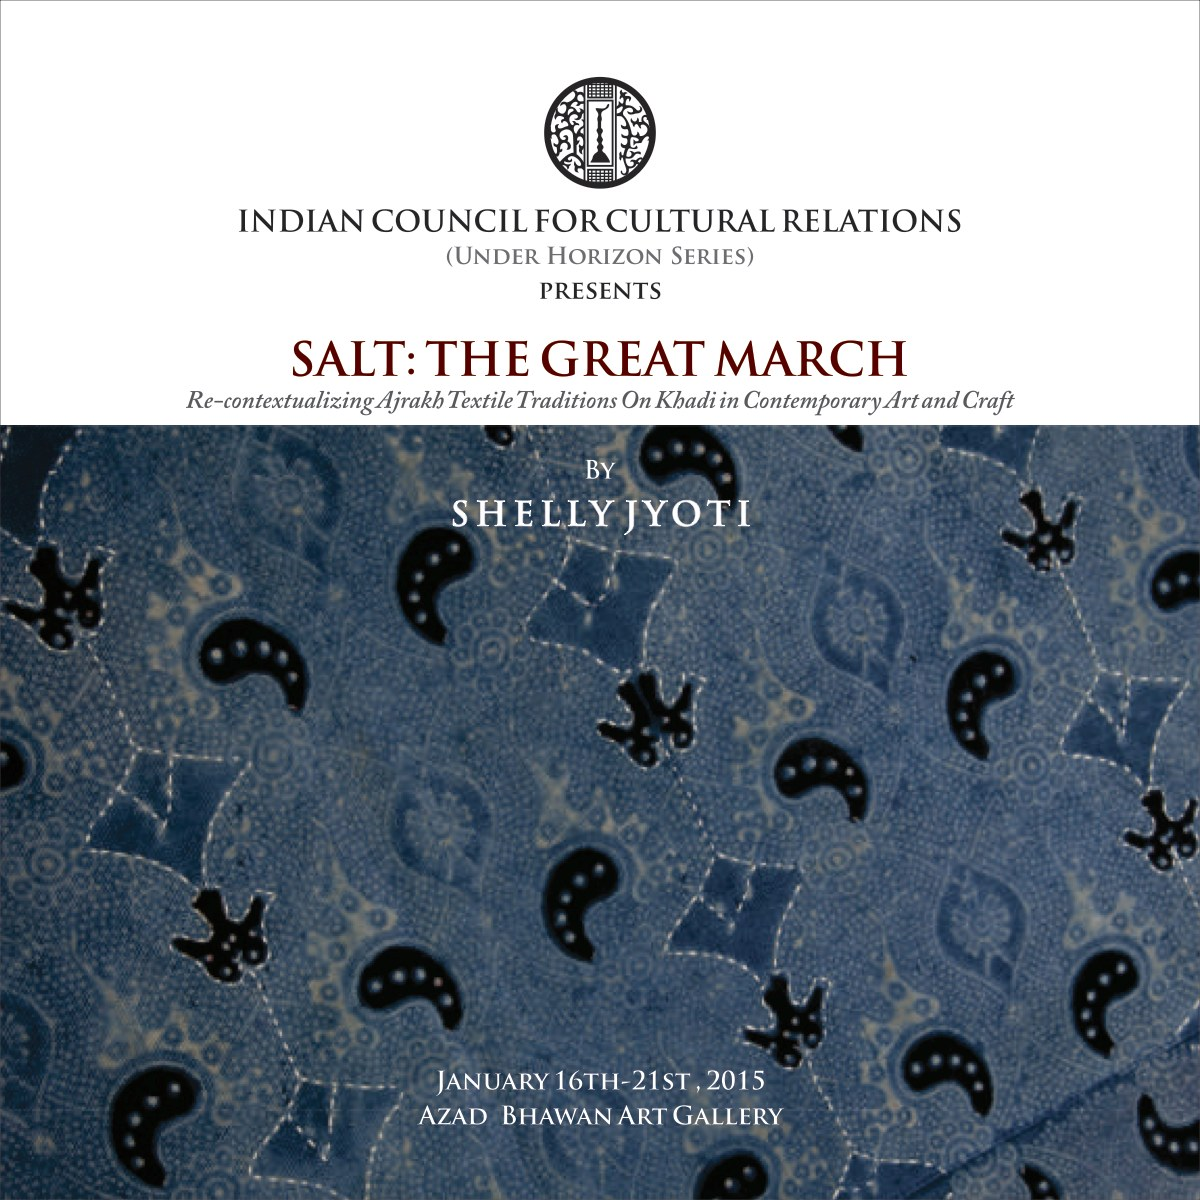 Indian Council of Cultural Relations ICCR presents SALT:THE GREAT MARCH Re-Opens at Azad Bhavan Gallery, New Delhi